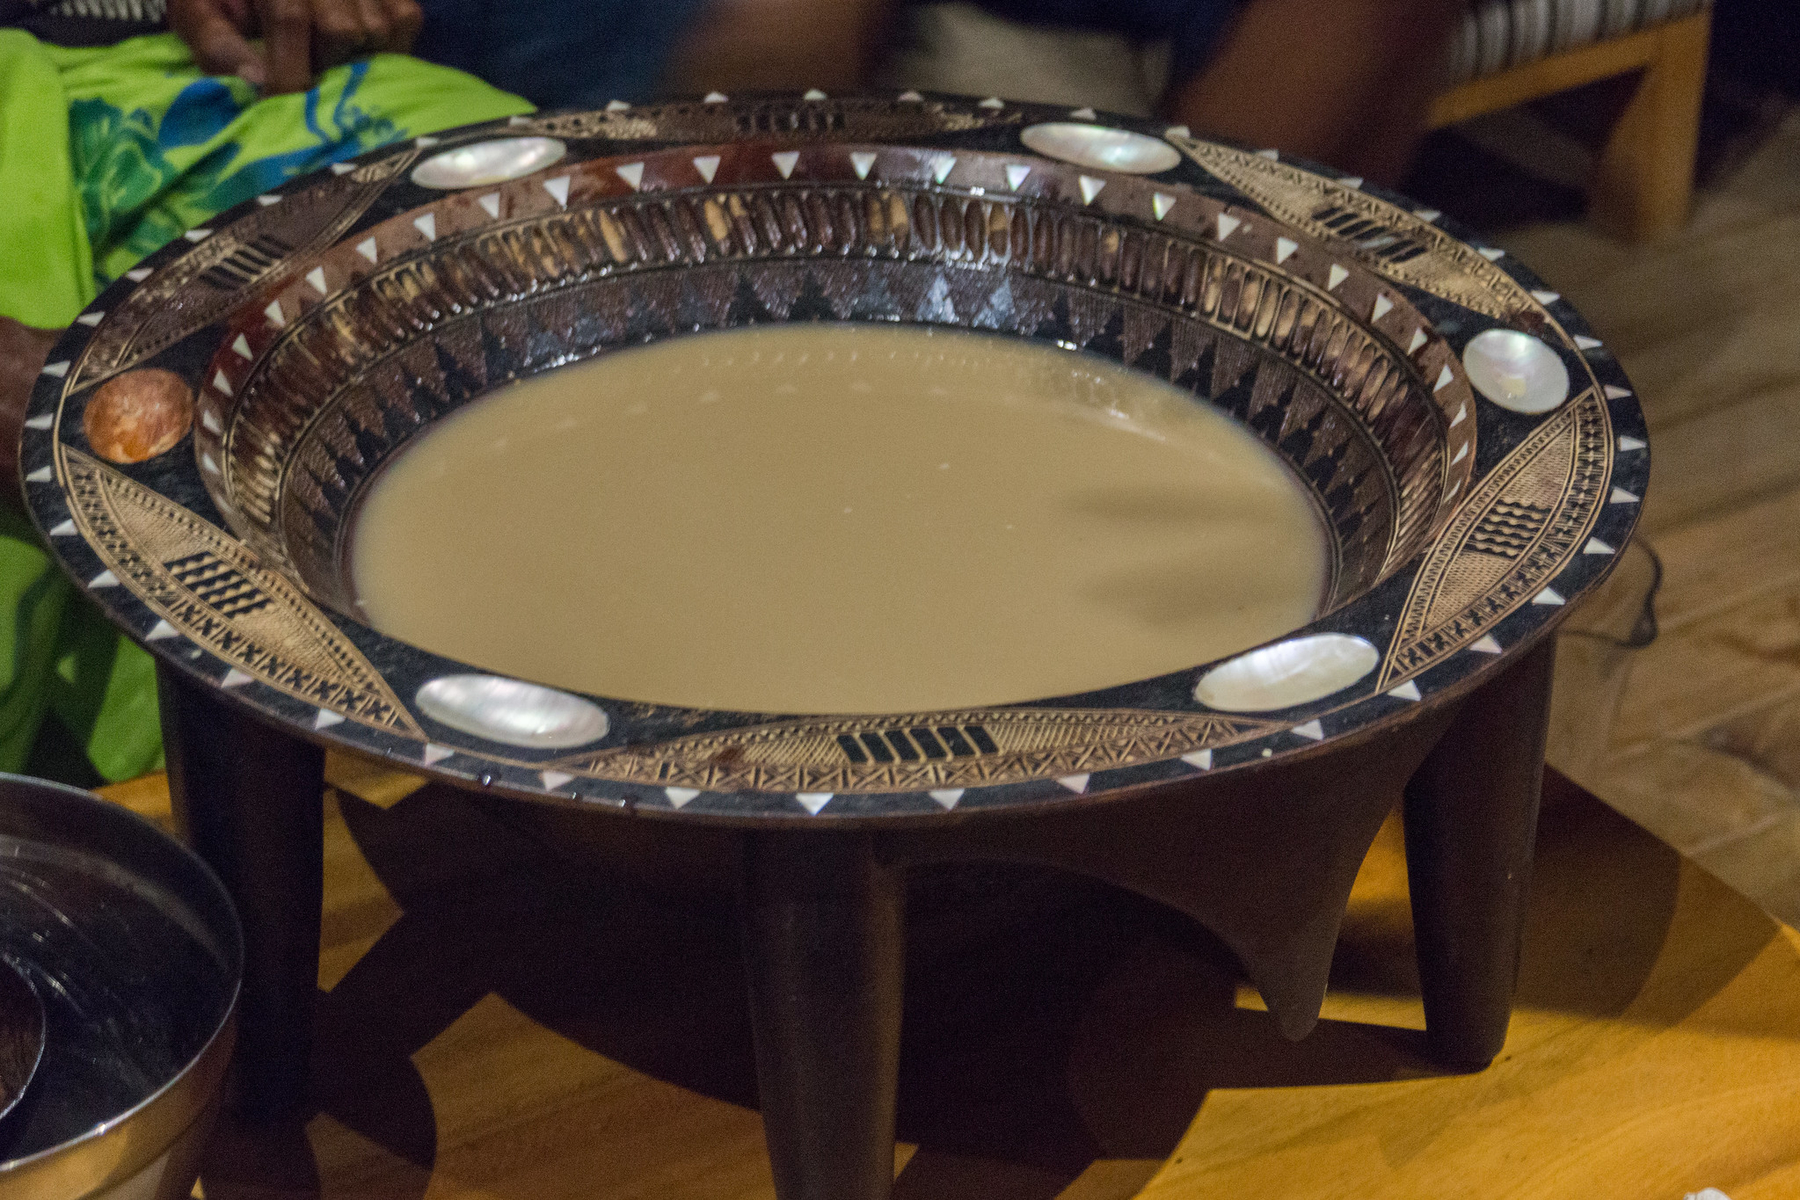 How to Make Kava Tea in 5 Easy Steps